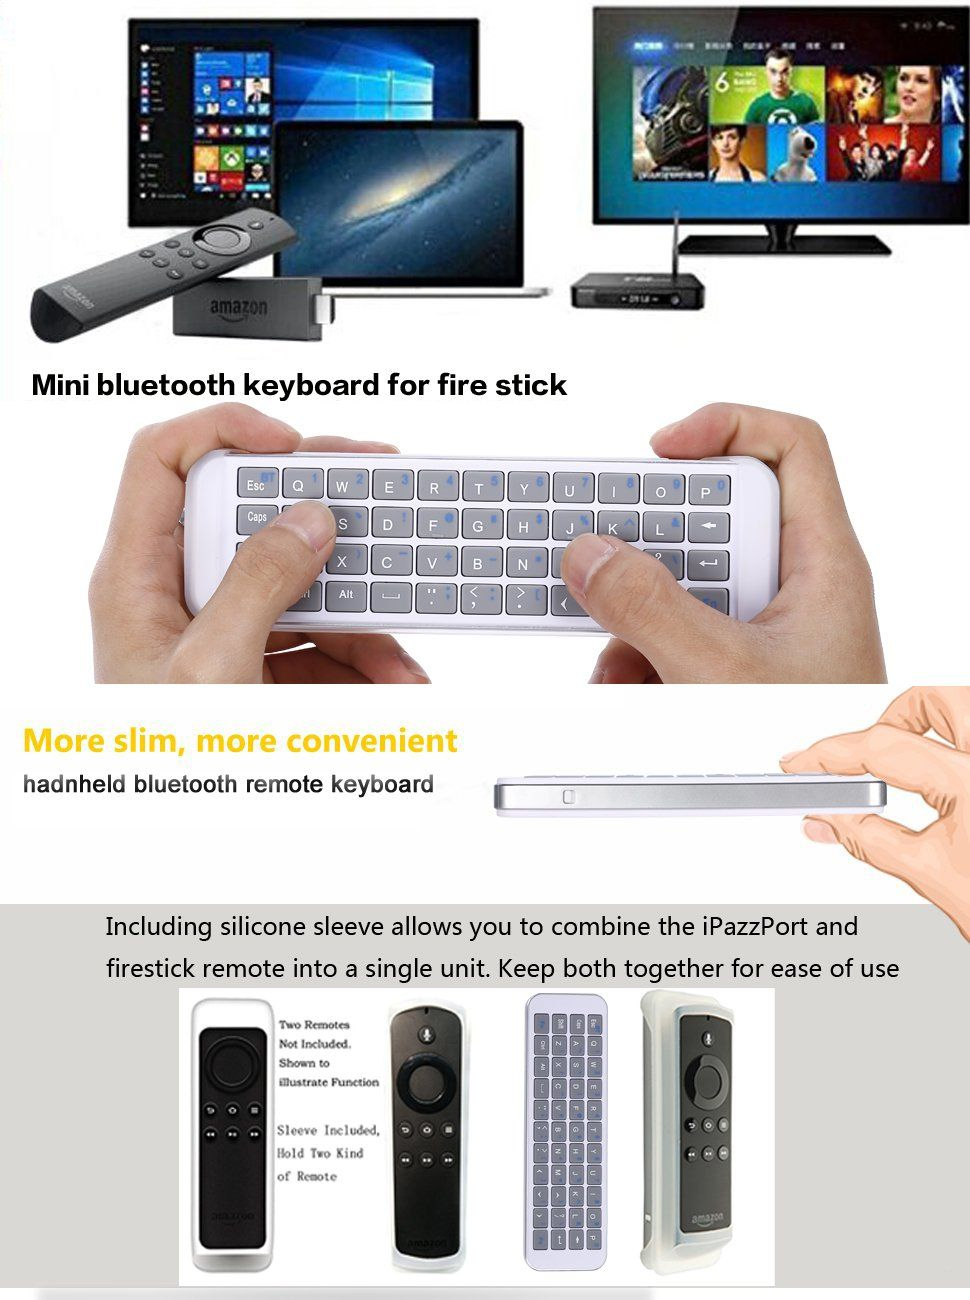 Amazon Com Ipazzport Mini Bluetooth Keyboard For Fire Tv Stick With Qwerty To Type And Search Kp 810 30b Computers Acce Fire Tv Stick Amazon Remote Fire Tv